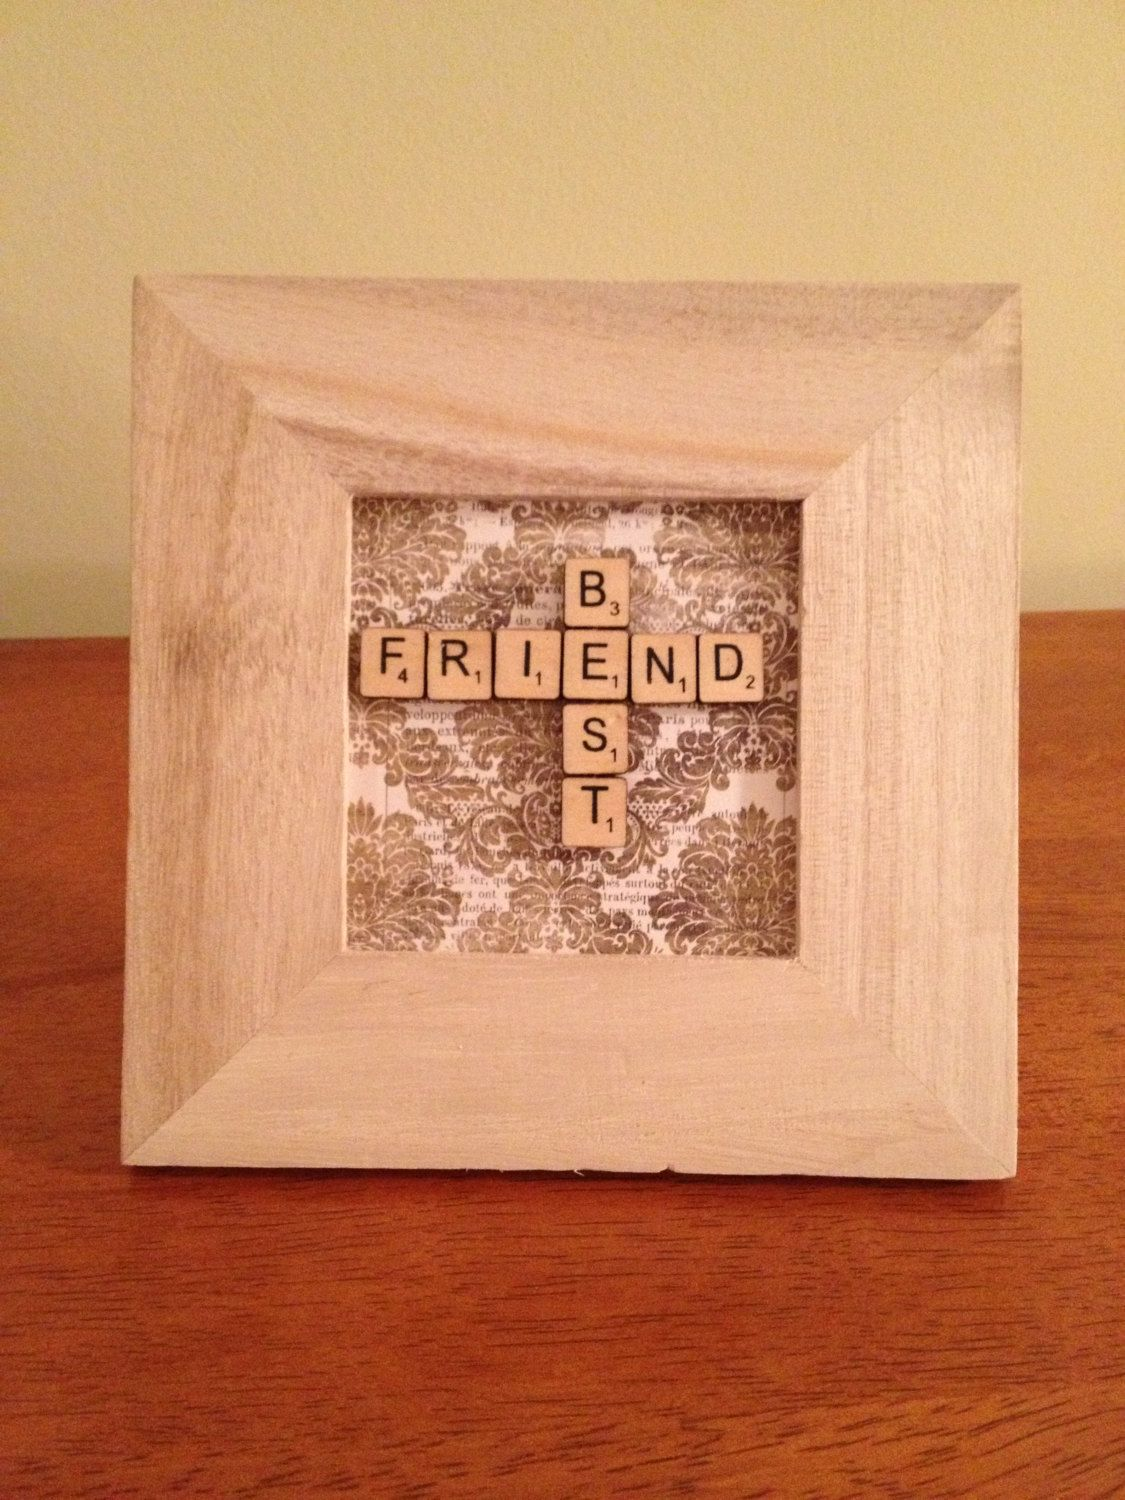 Hand crafted framed best friend miniature scrabble tiles gift you could totally do this yourself its a cute gift idea you could add your name and your best friends name to make it more personal solutioingenieria